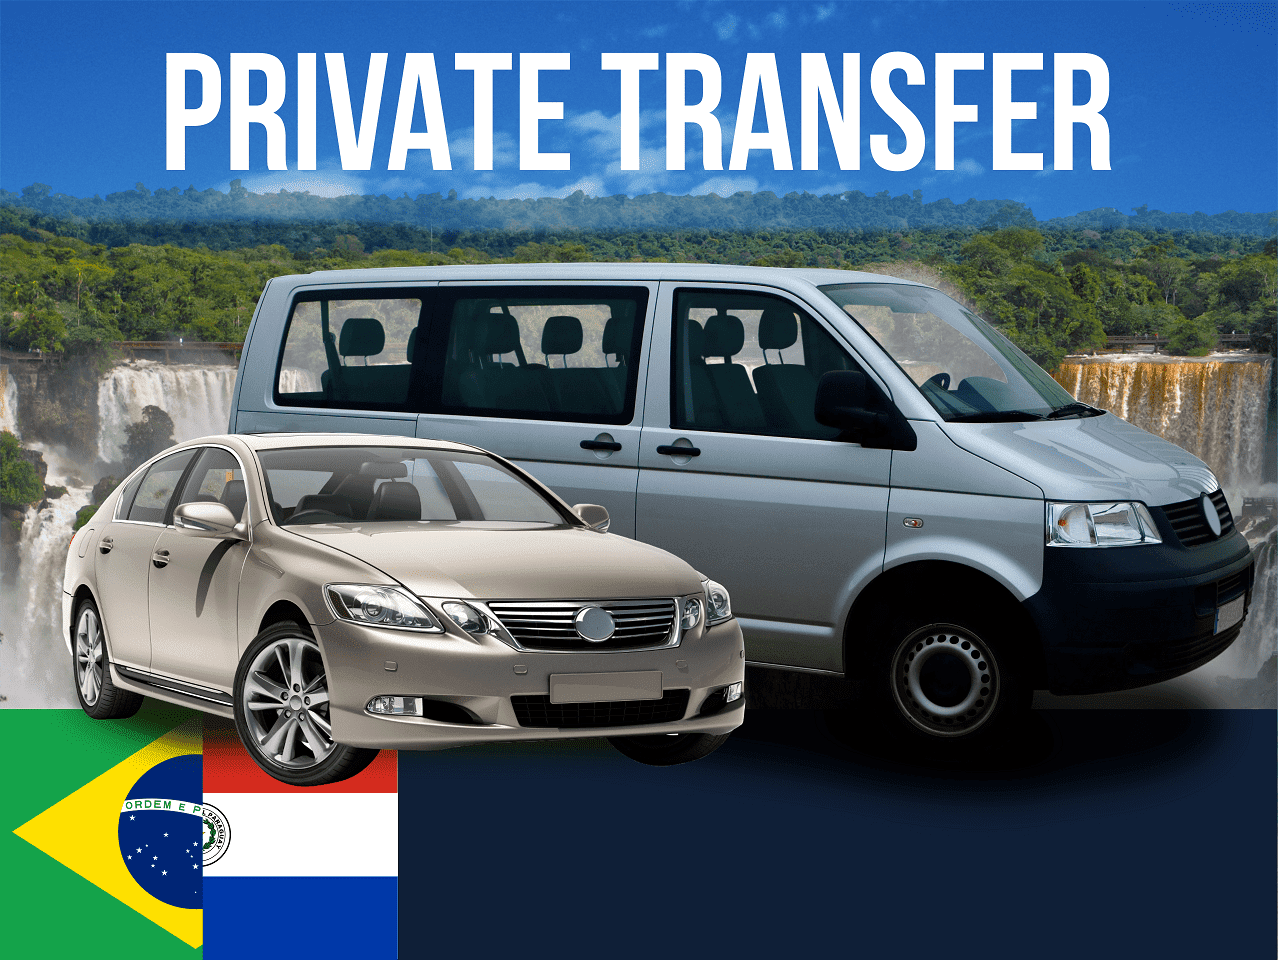 Private transfer from Brazil to Paraguay